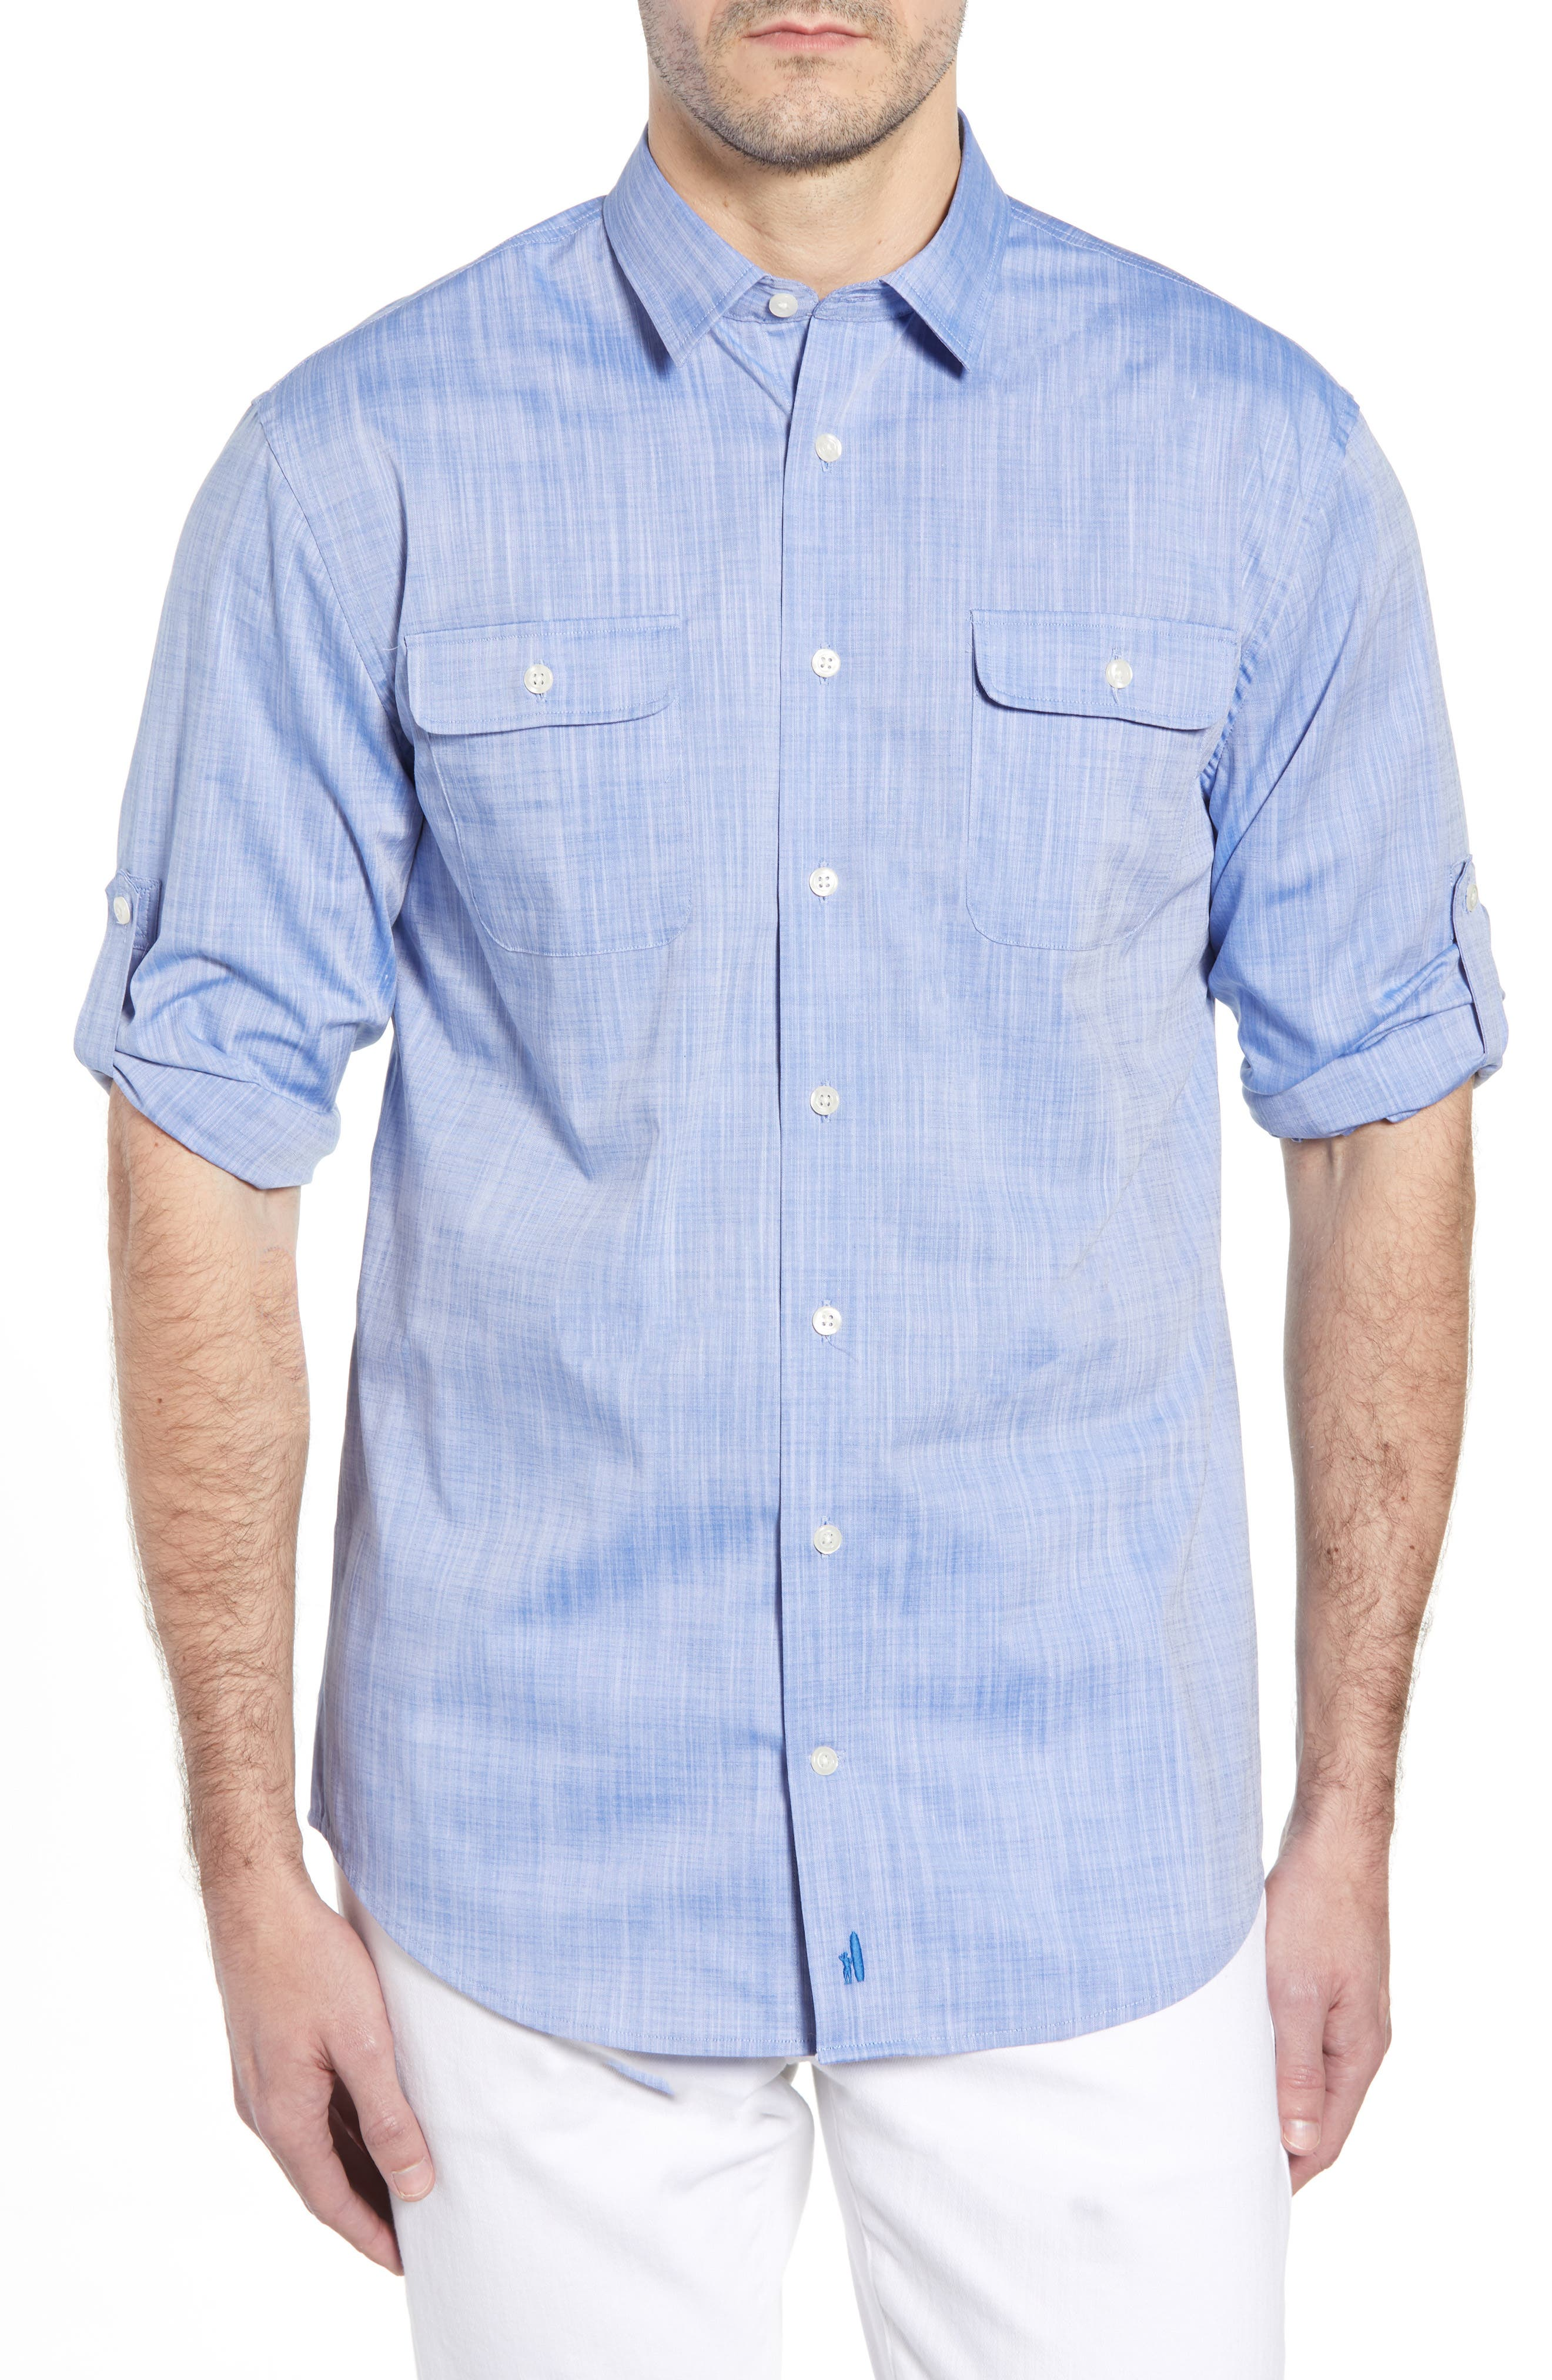 Hutton Classic Fit Shirt,                             Main thumbnail 1, color,                             DEEP WATER